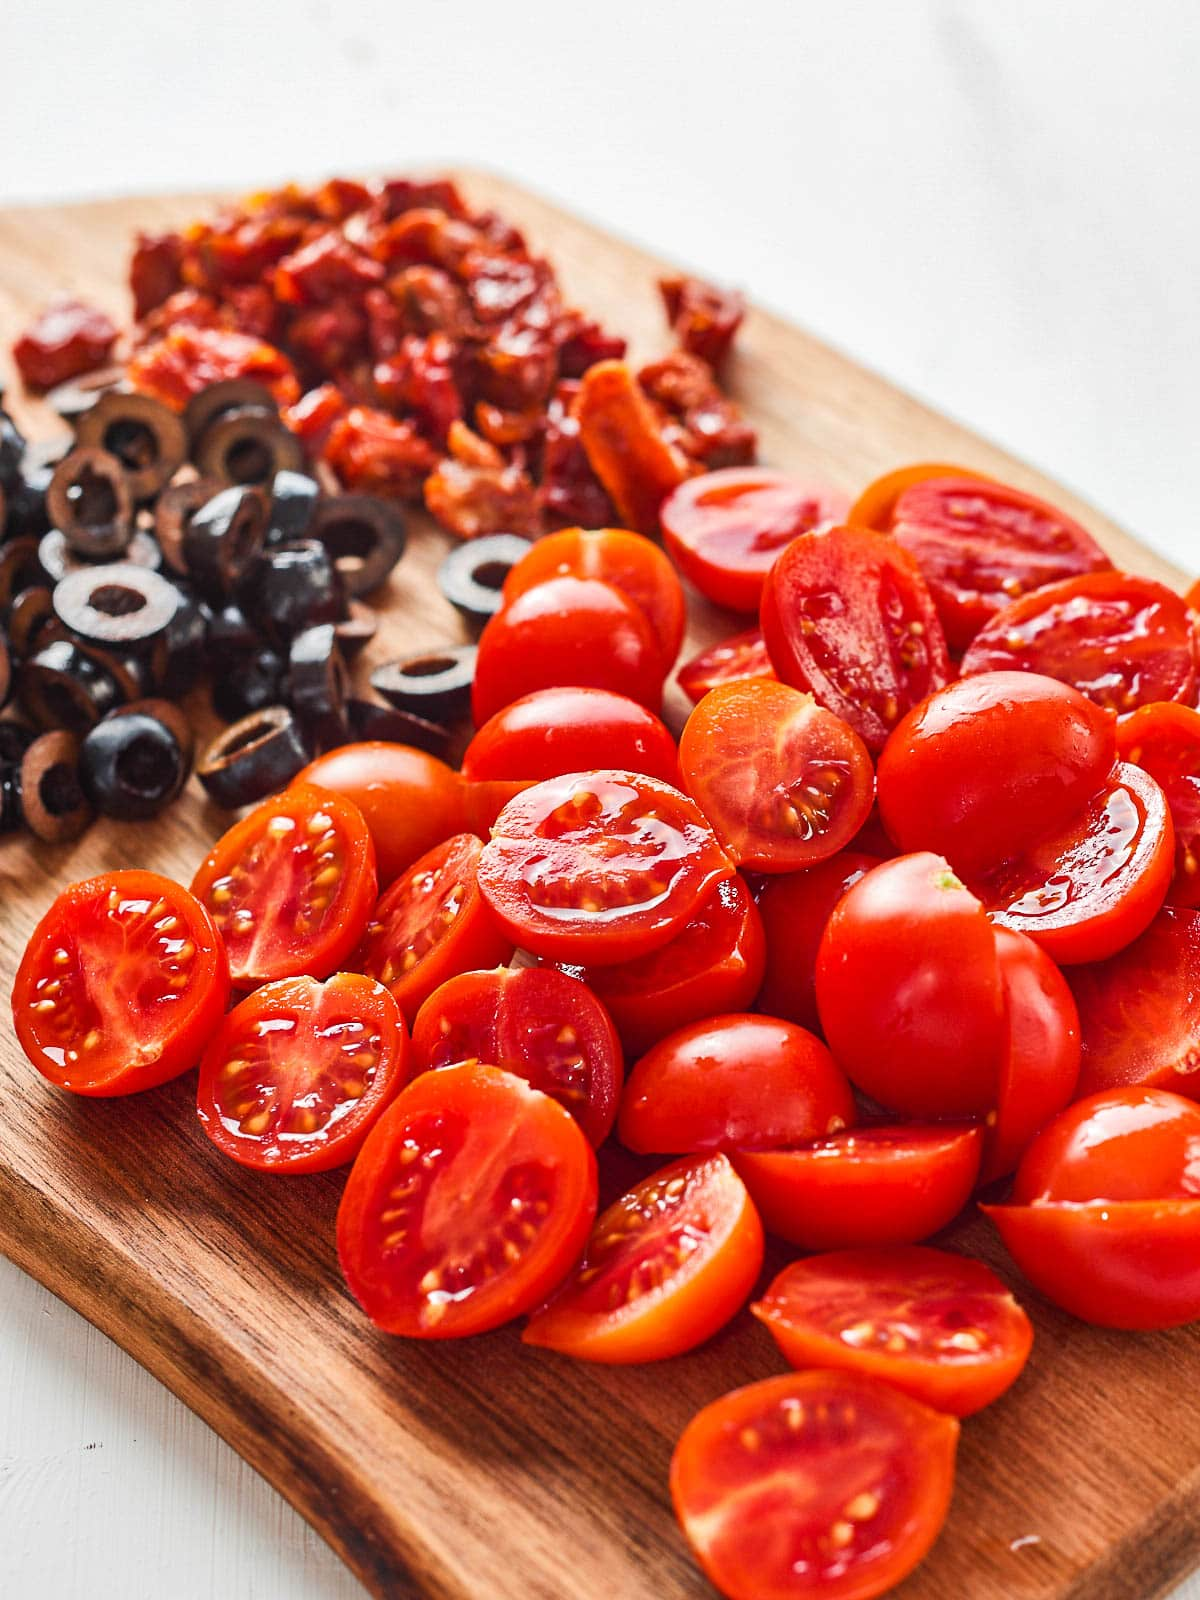 Chopped tomatoes, olives and sun dried tomatoes on a chopping board